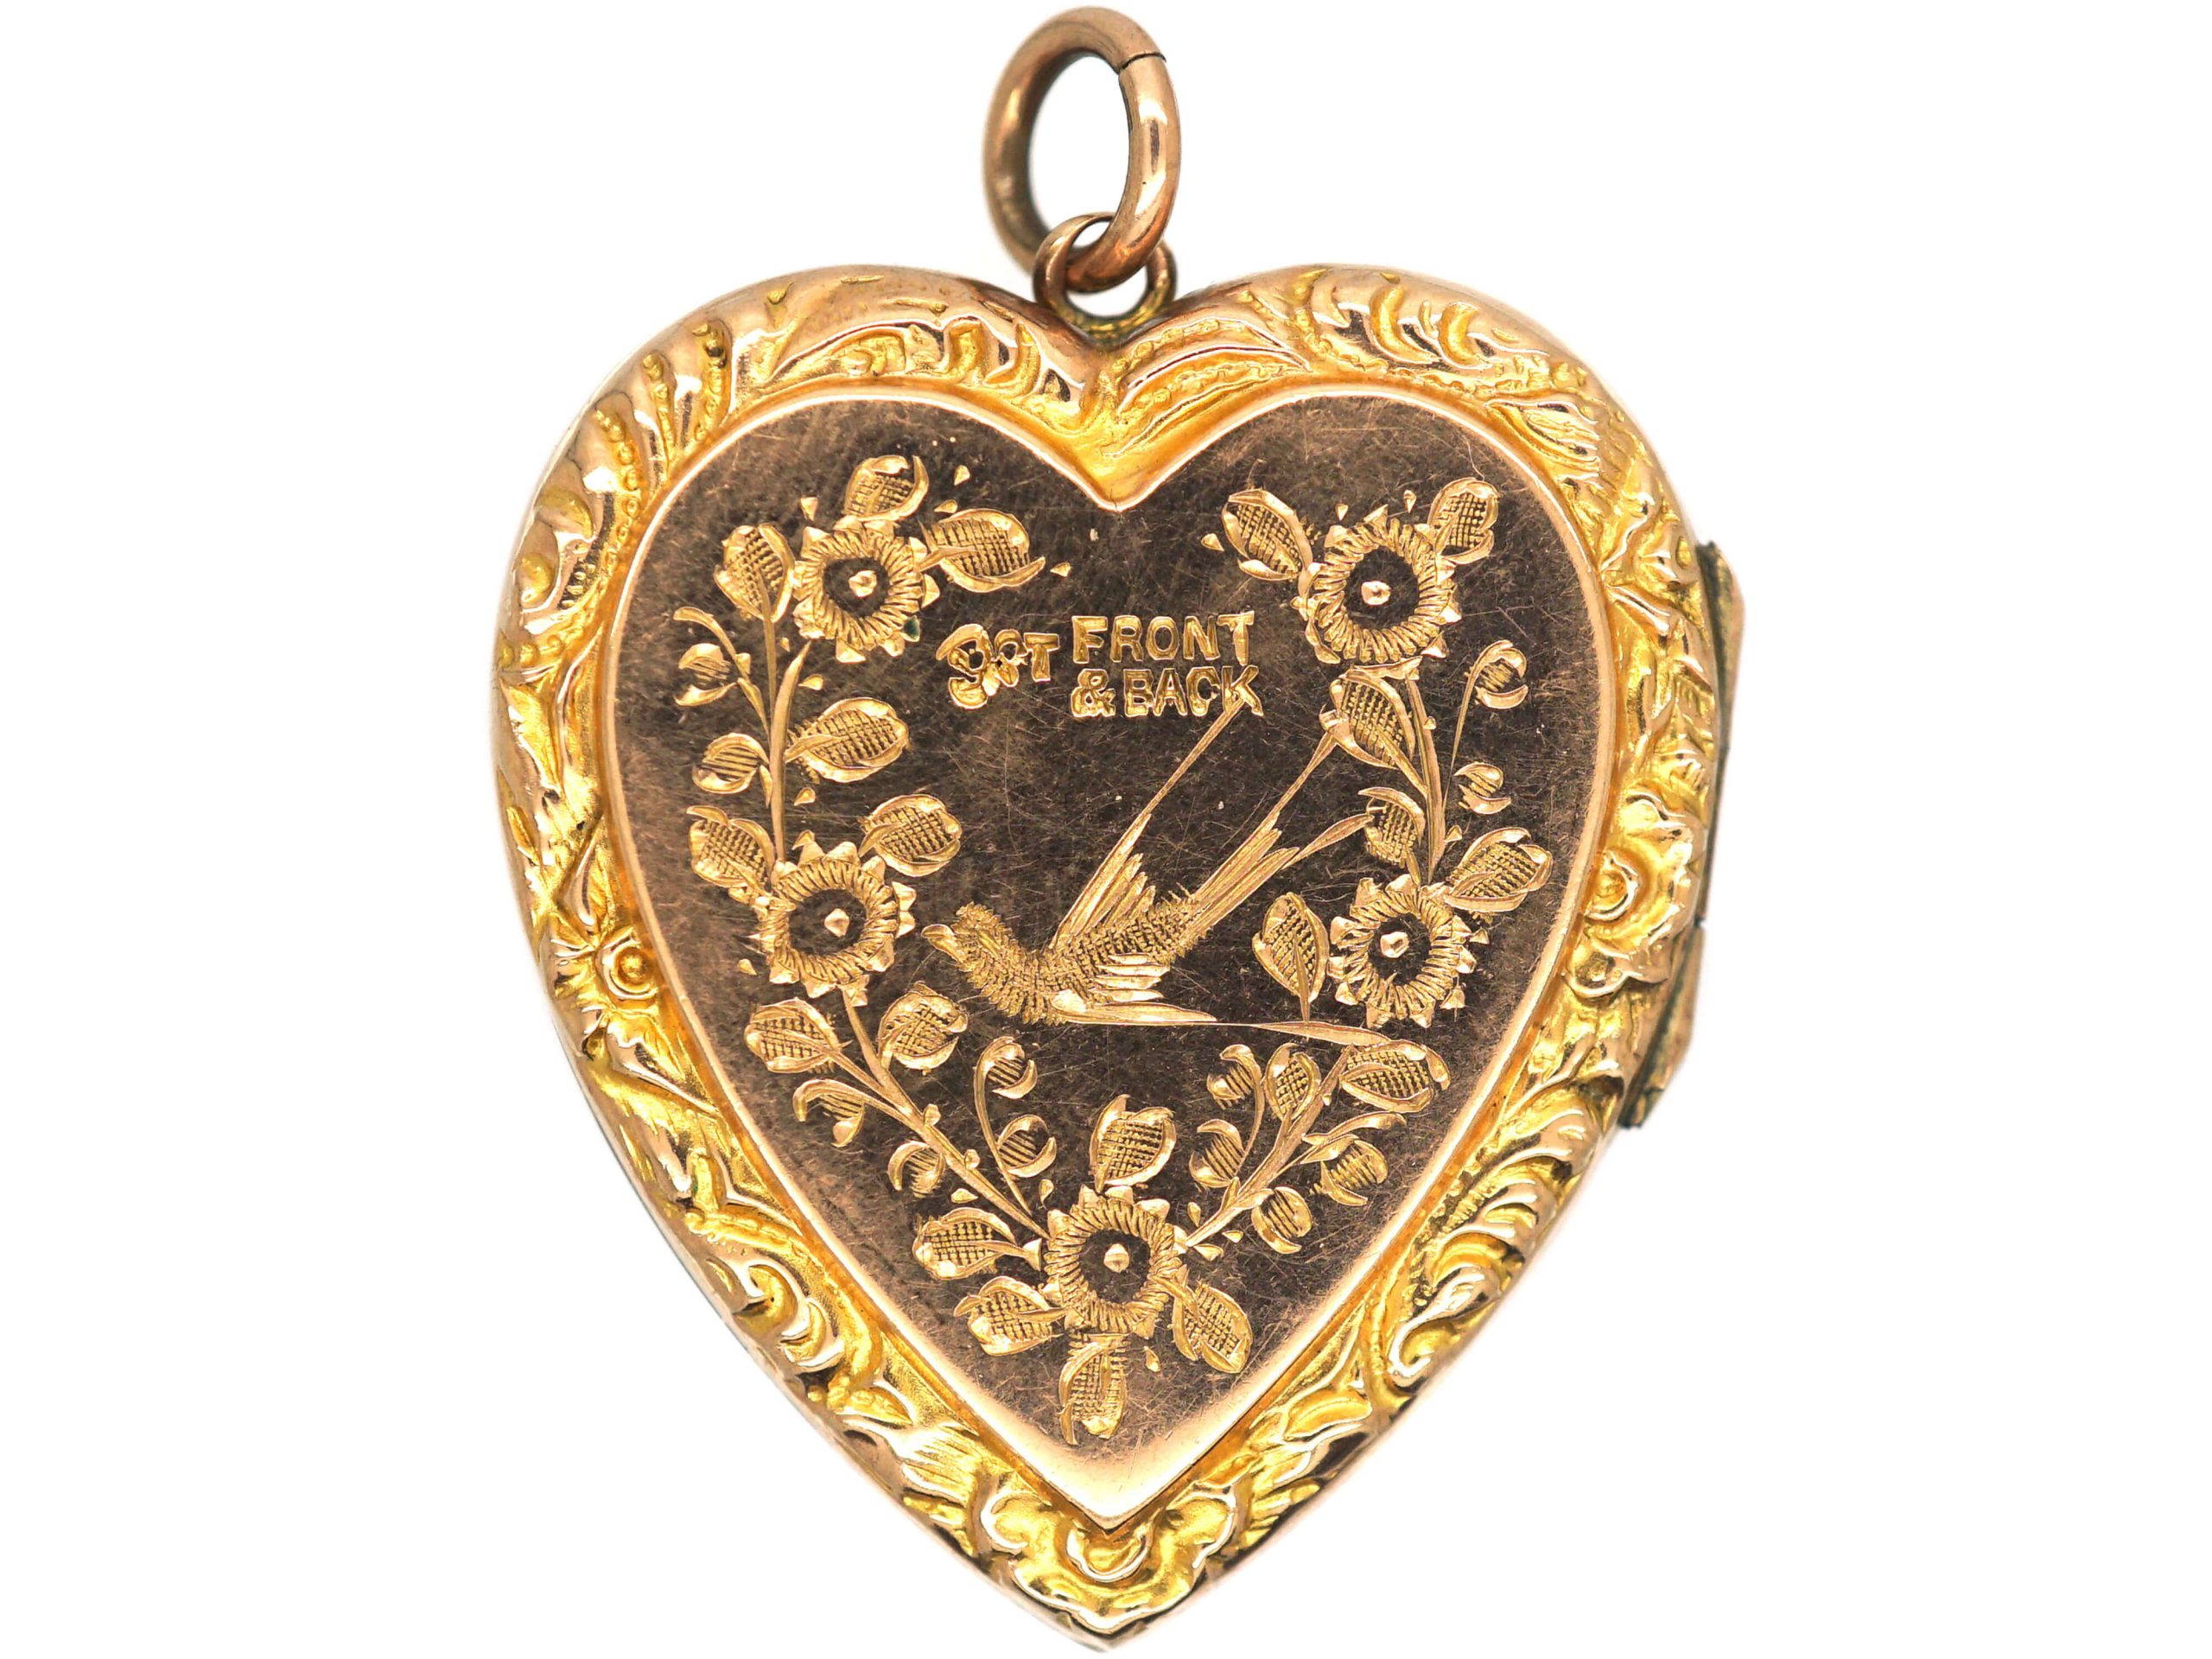 Edwardian 9ct Back & Front Heart Shaped Locket with Swallow & Roses Motif